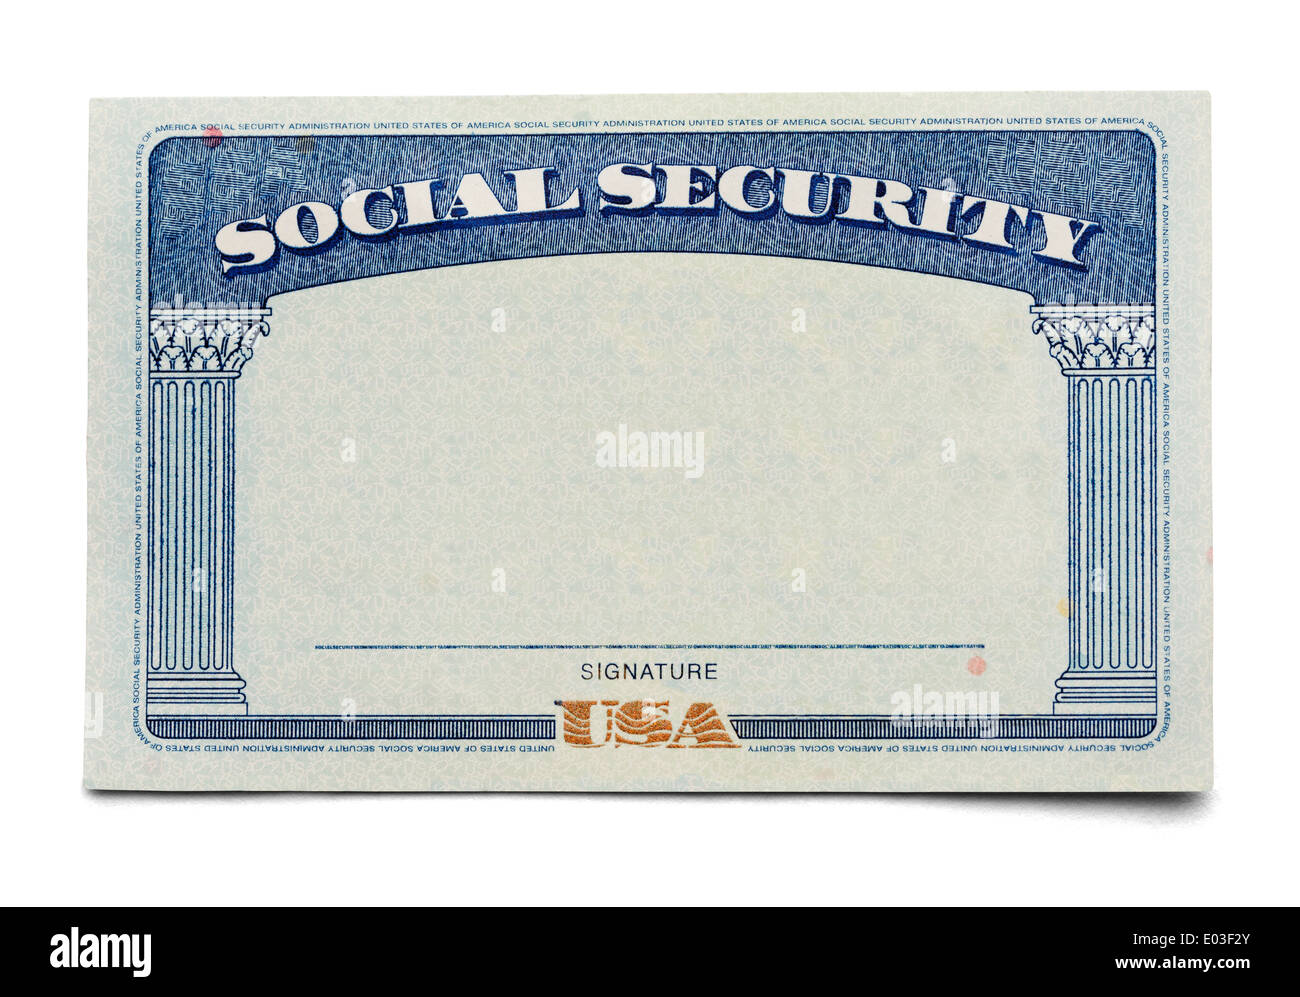 Blank Social Security Card Isolated on a White Background. - Stock Image